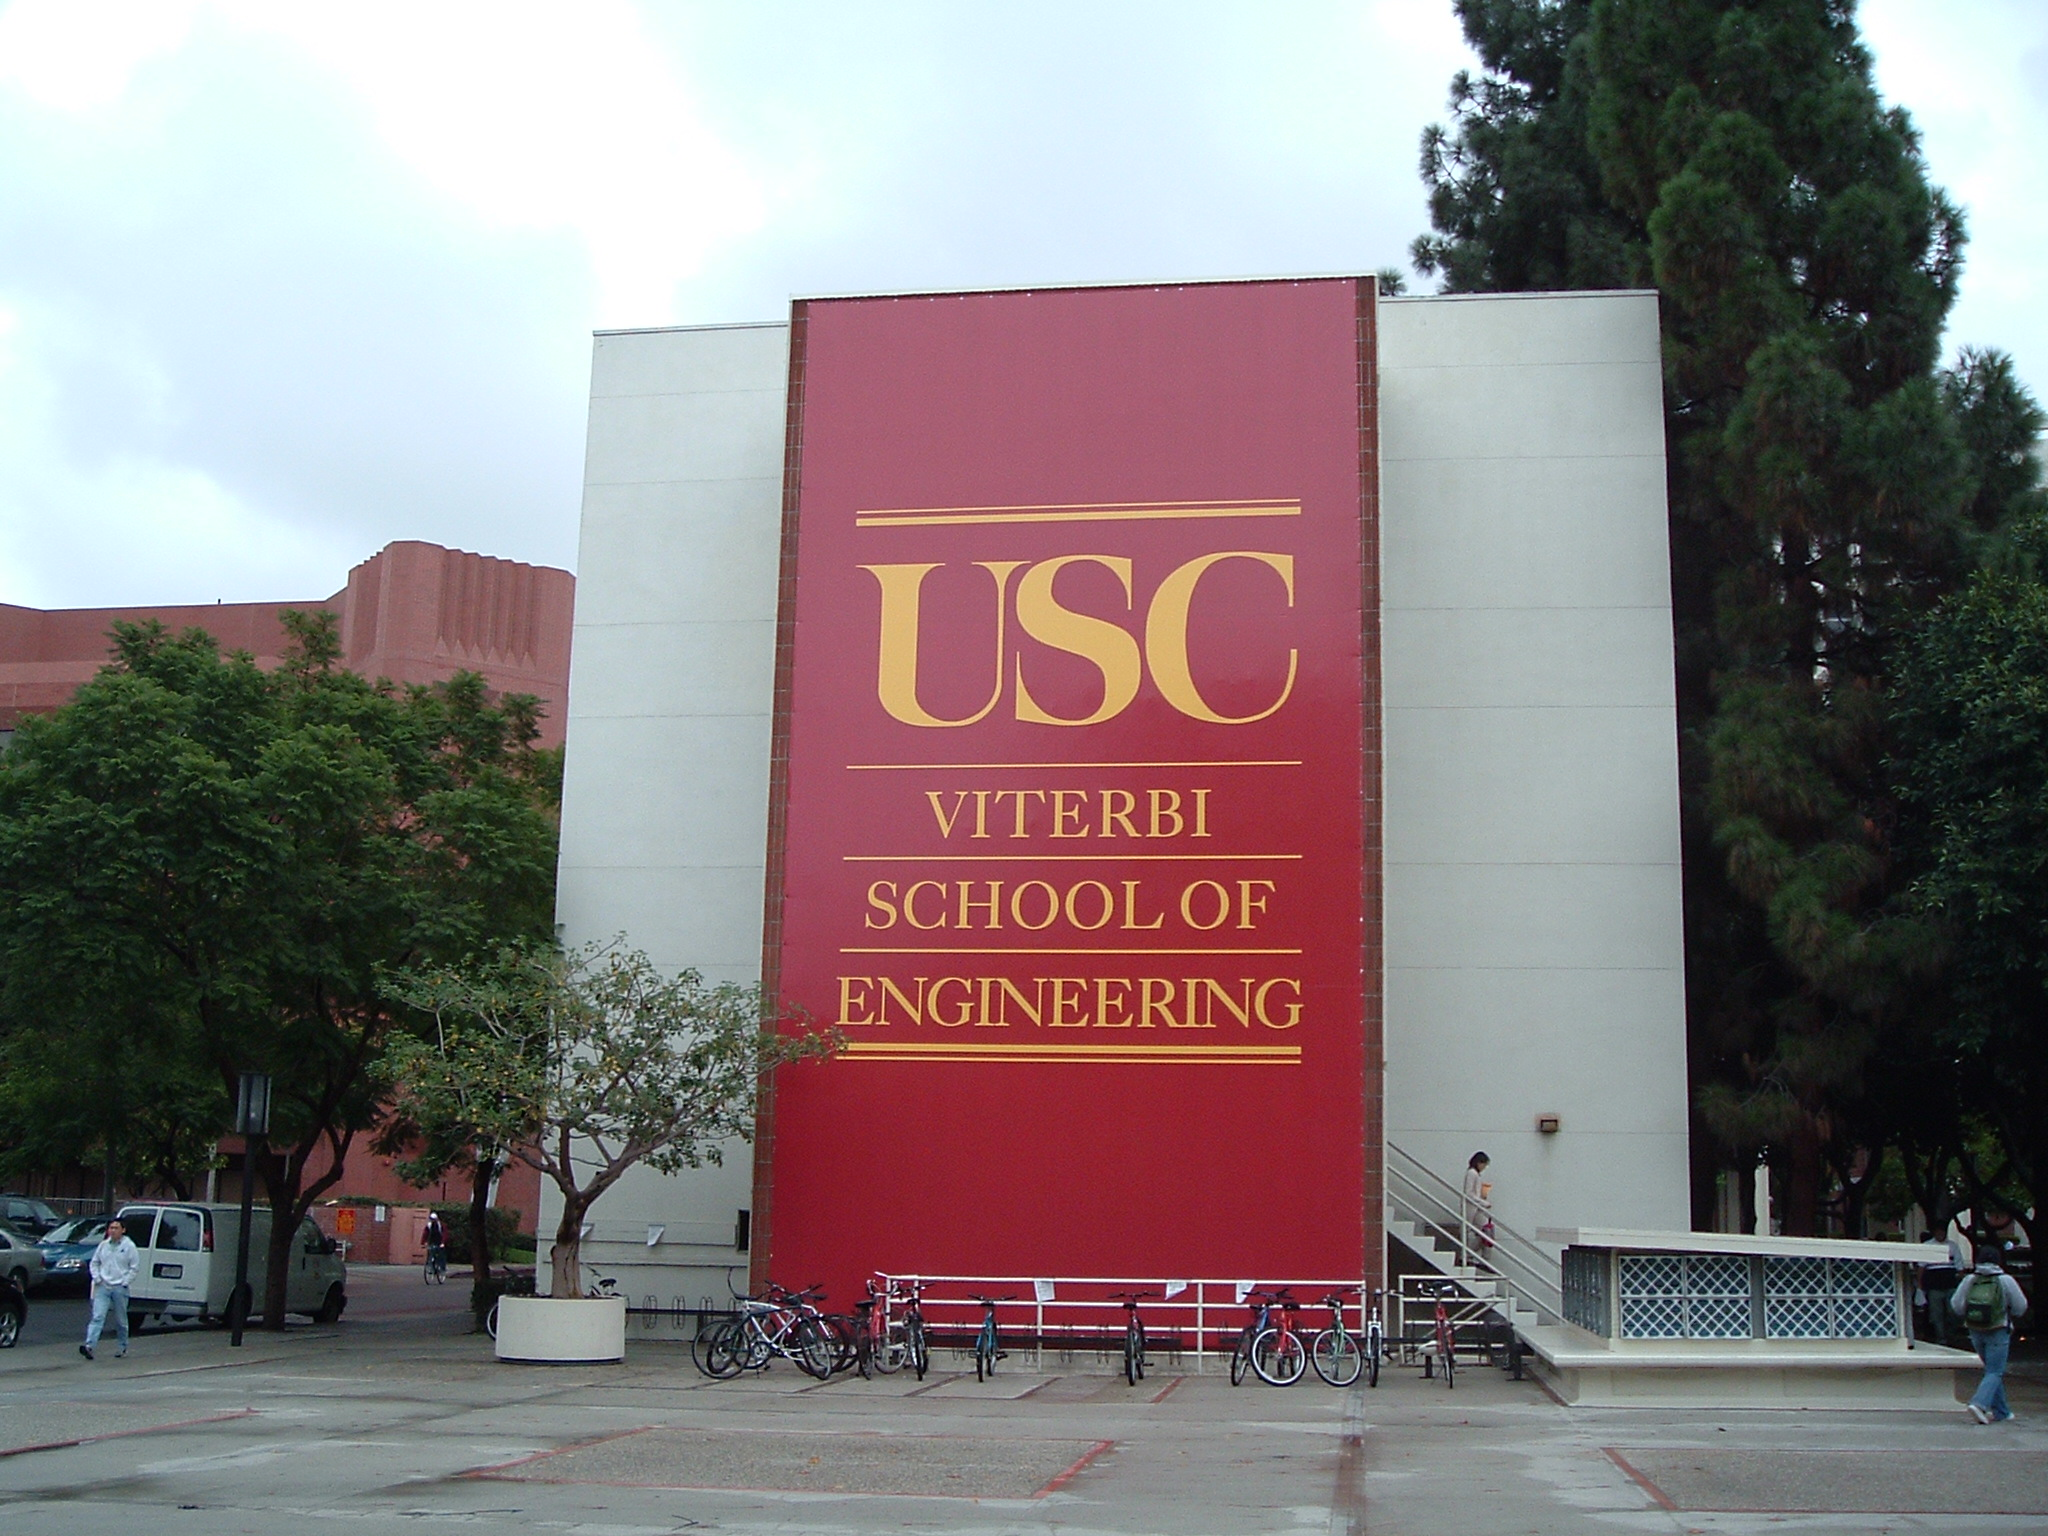 Viterbi School of Engineering 2016-17 Admission Statistics